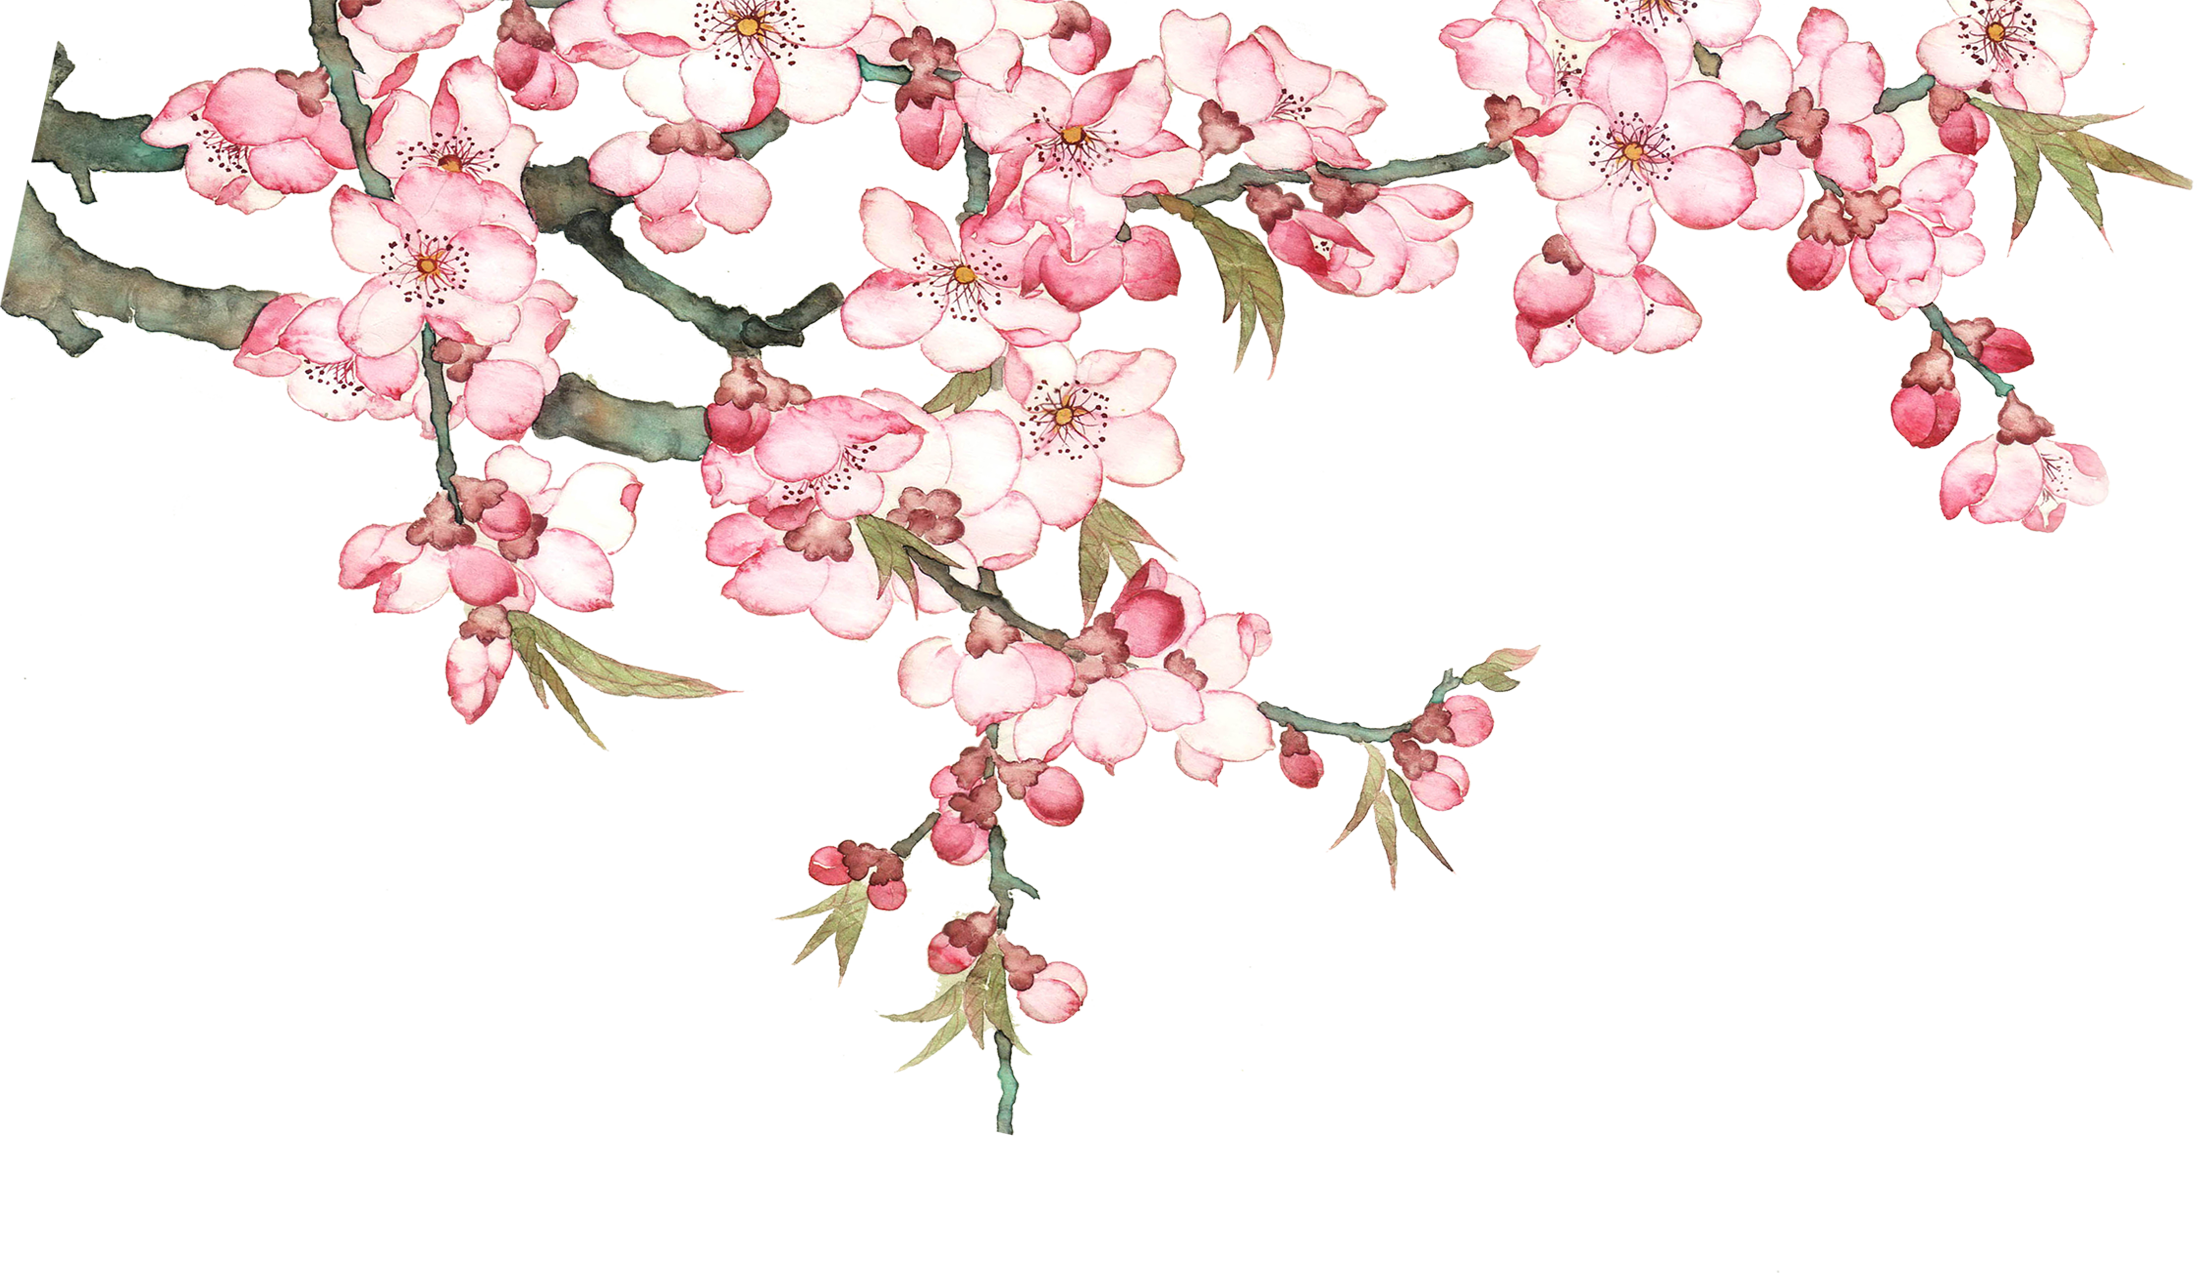 Flowering Peach Trees Png - Peach flowers png, Picture #634320 peach flowers png